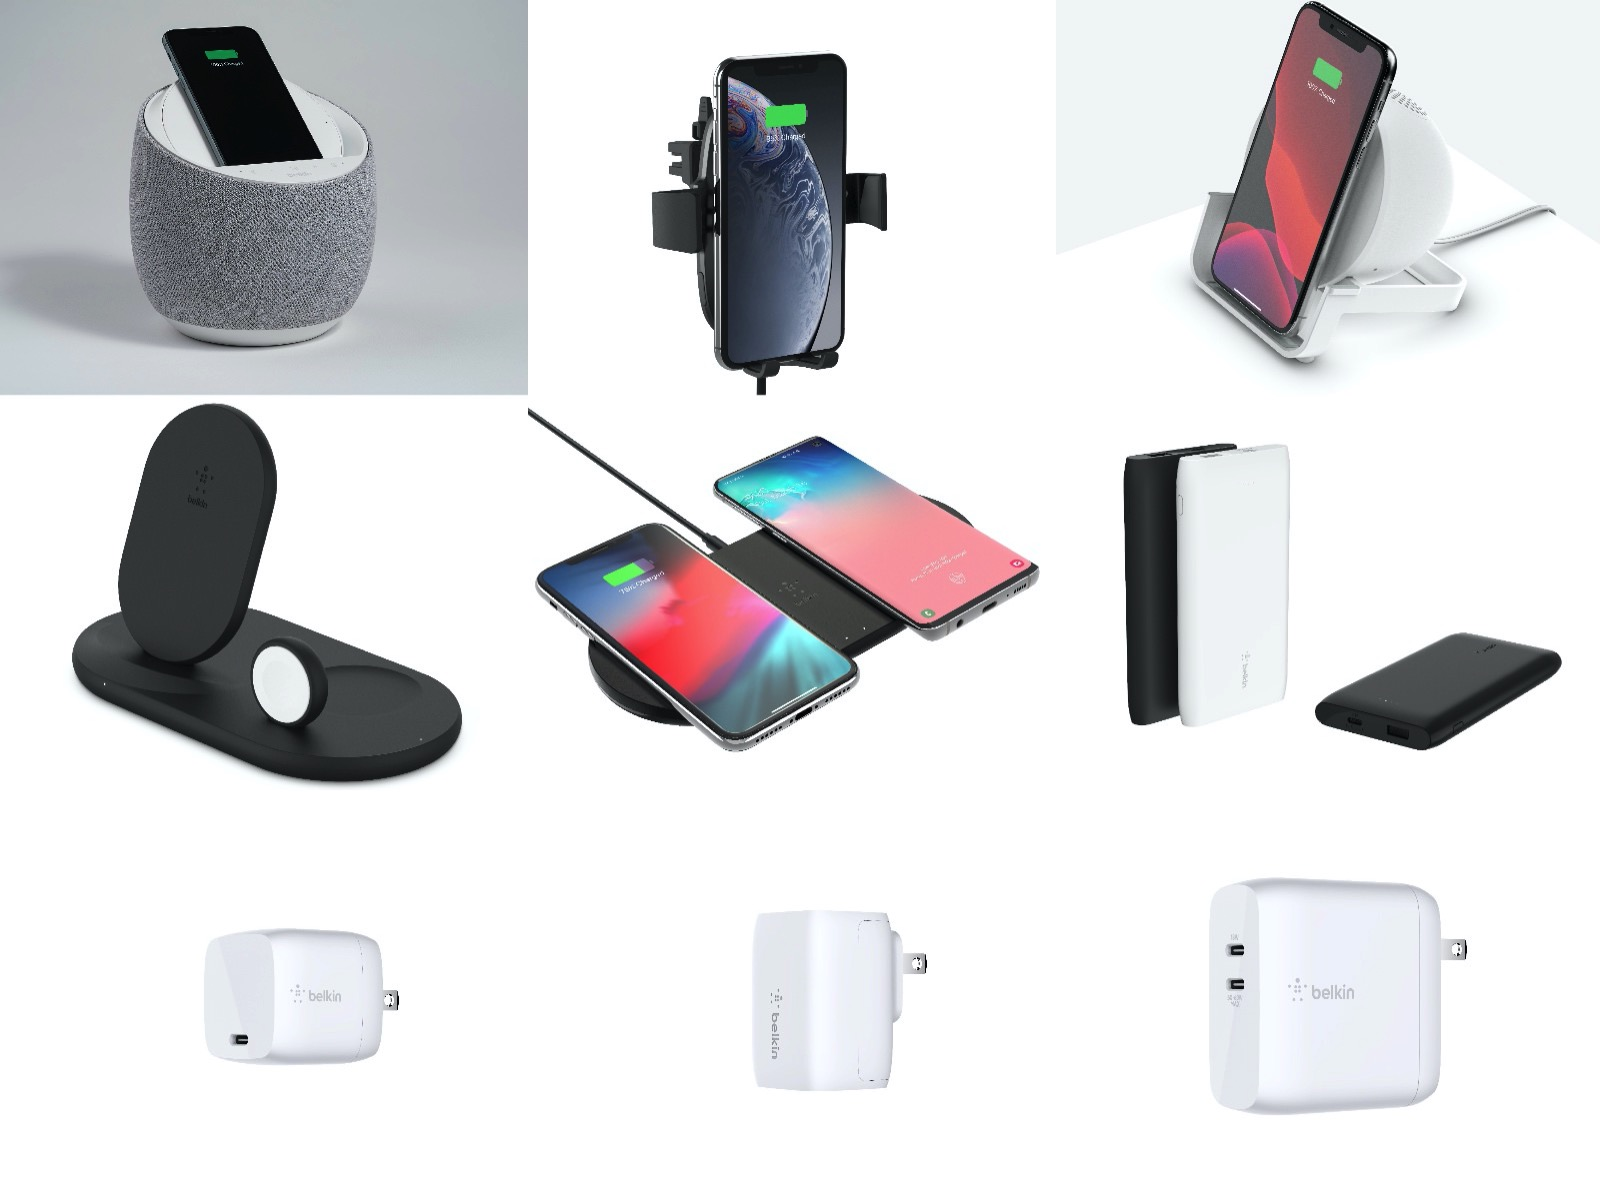 Belkin Connected Things CES2020